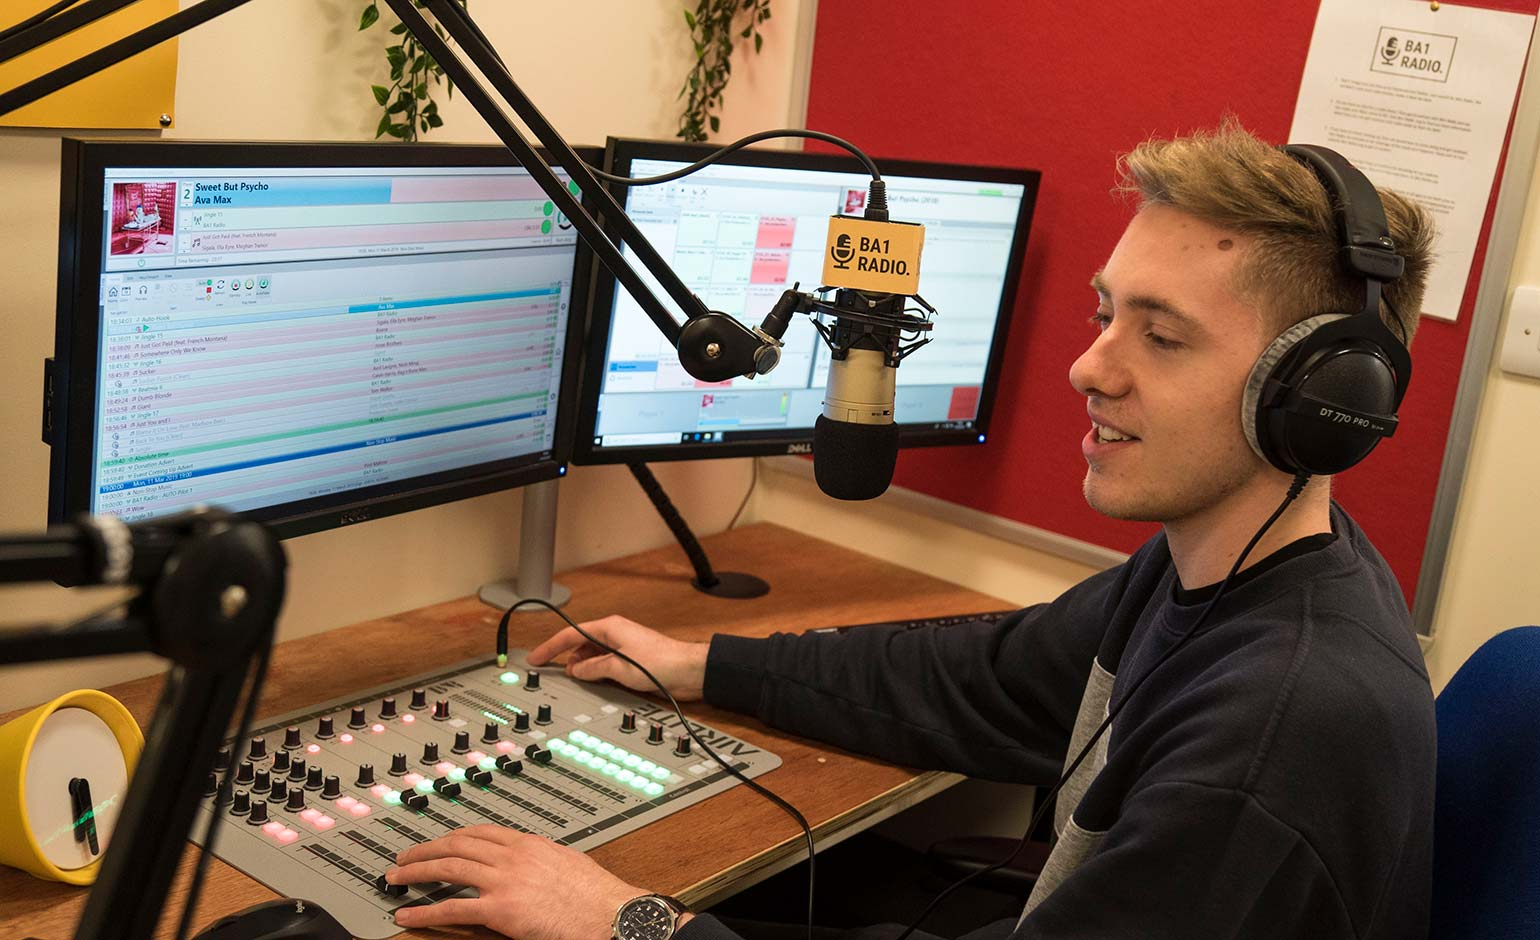 New local community station BA1 Radio set to hold open day this weekend | Bath Echo